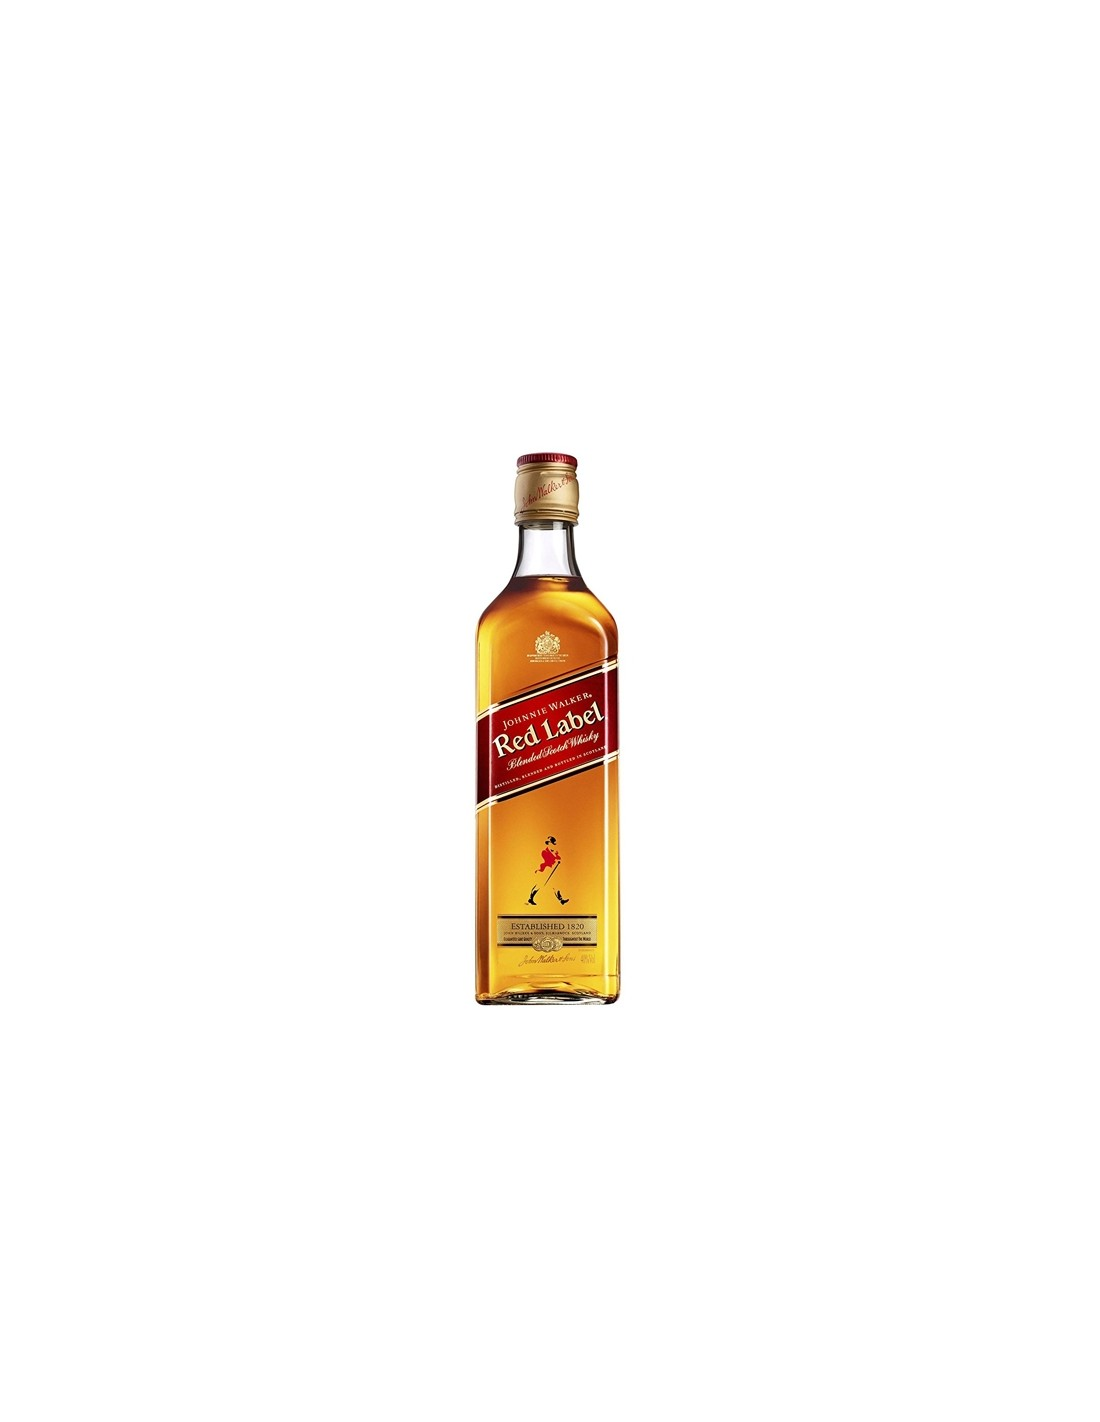 Whisky Johnnie Walker Red Label, 40% alc., 0.2L, Scotia